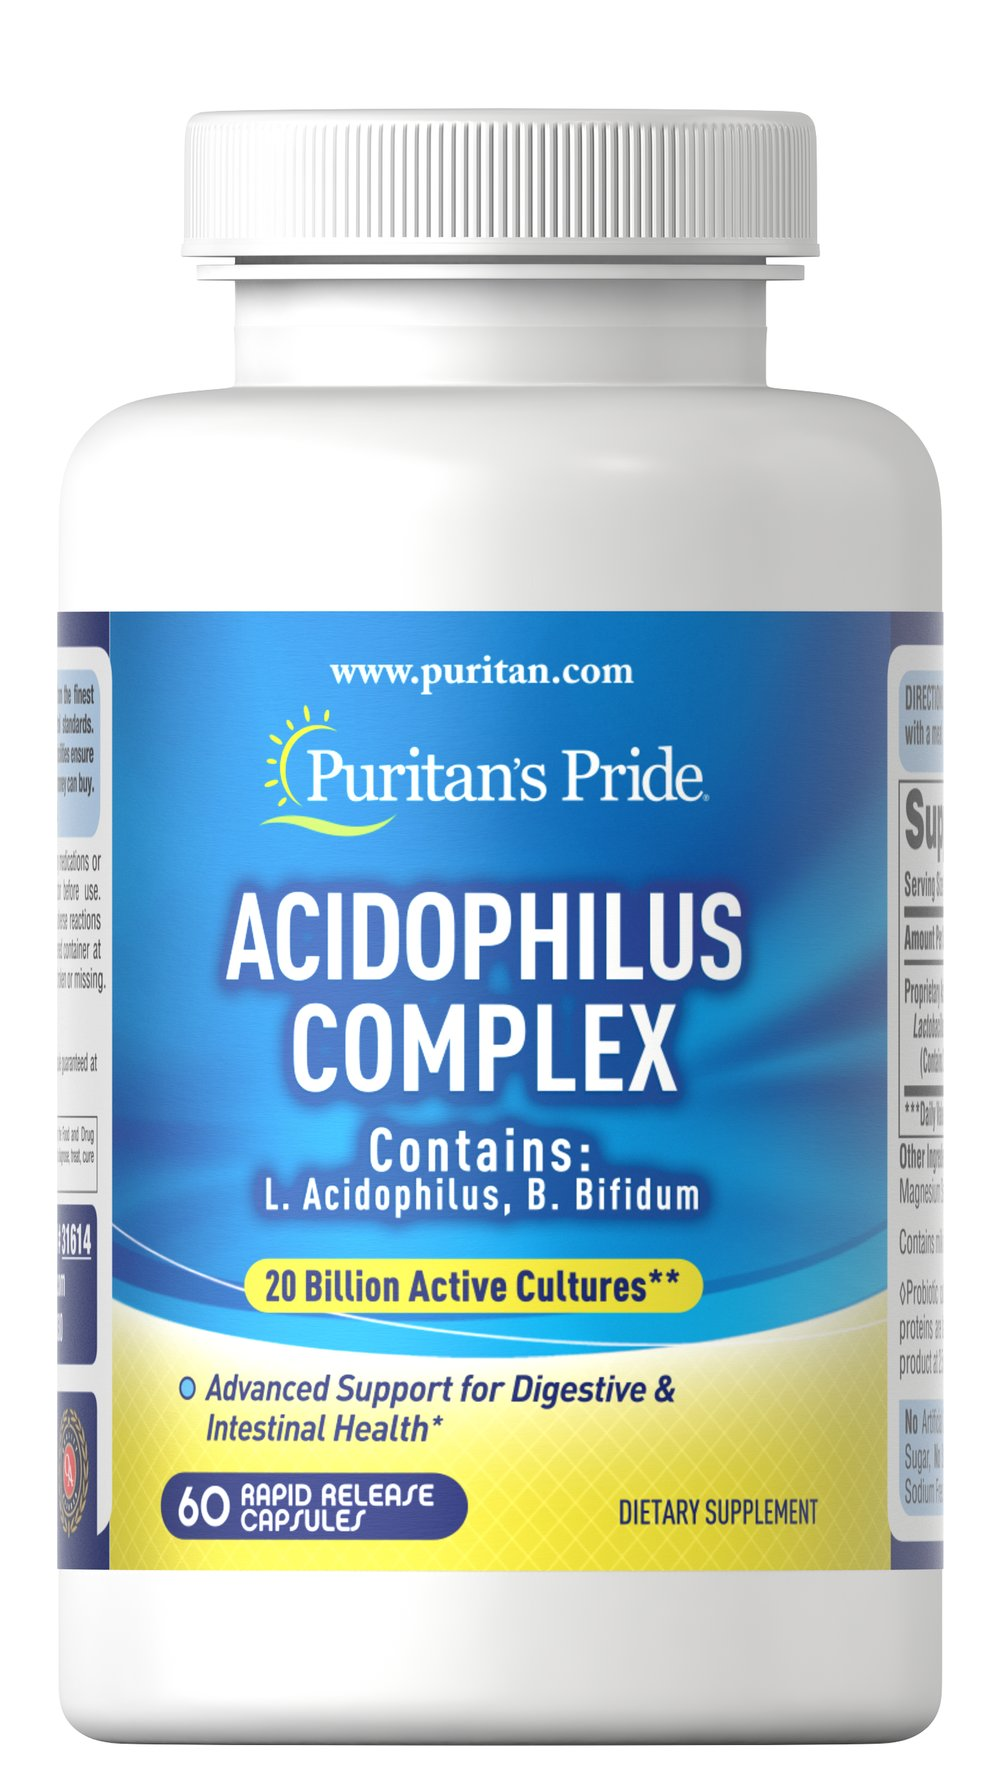 Acidophilus Complex 20 Billion <p>Acidophilus supports a favorable environment for the absorption of nutrients, encourages intestinal microflora balance, and promotes the healthy functioning of the intestinal system.**</p><p>20 billion active cultures per serving guaranteed at time of manufacture. </p> 60 Capsules 20 billion $39.99